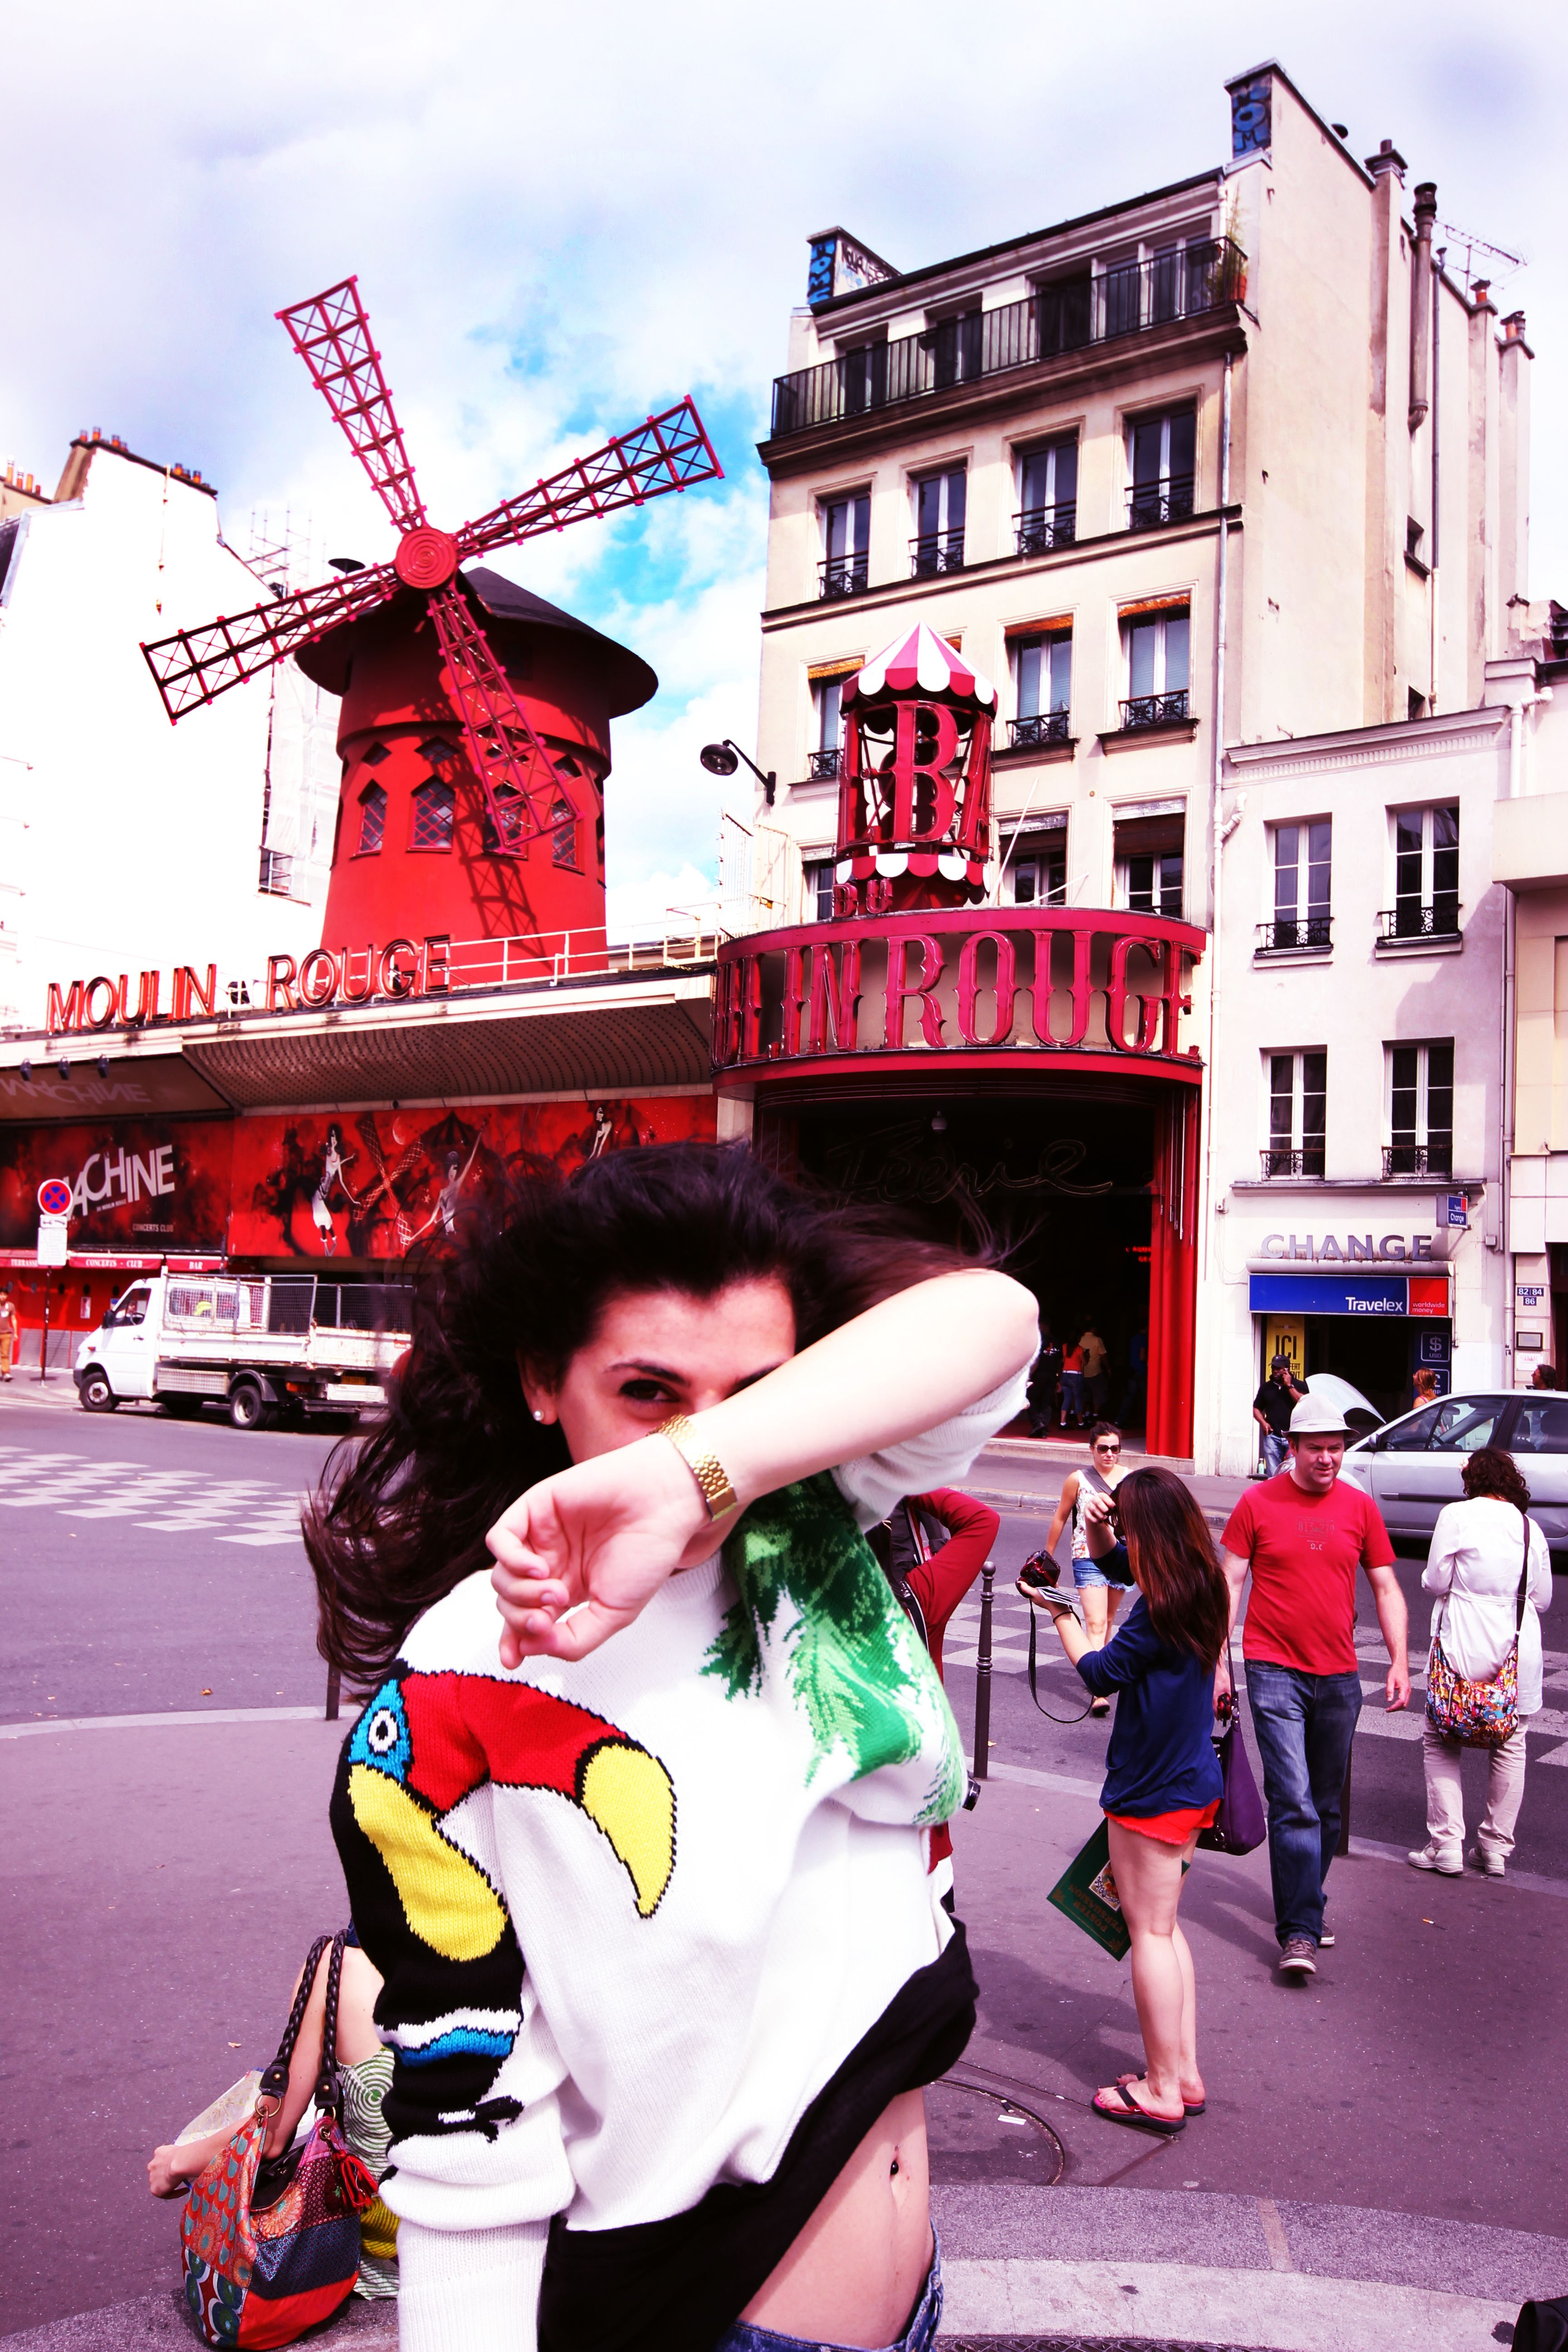 beatrice looking astonishing in front of moulin rouge